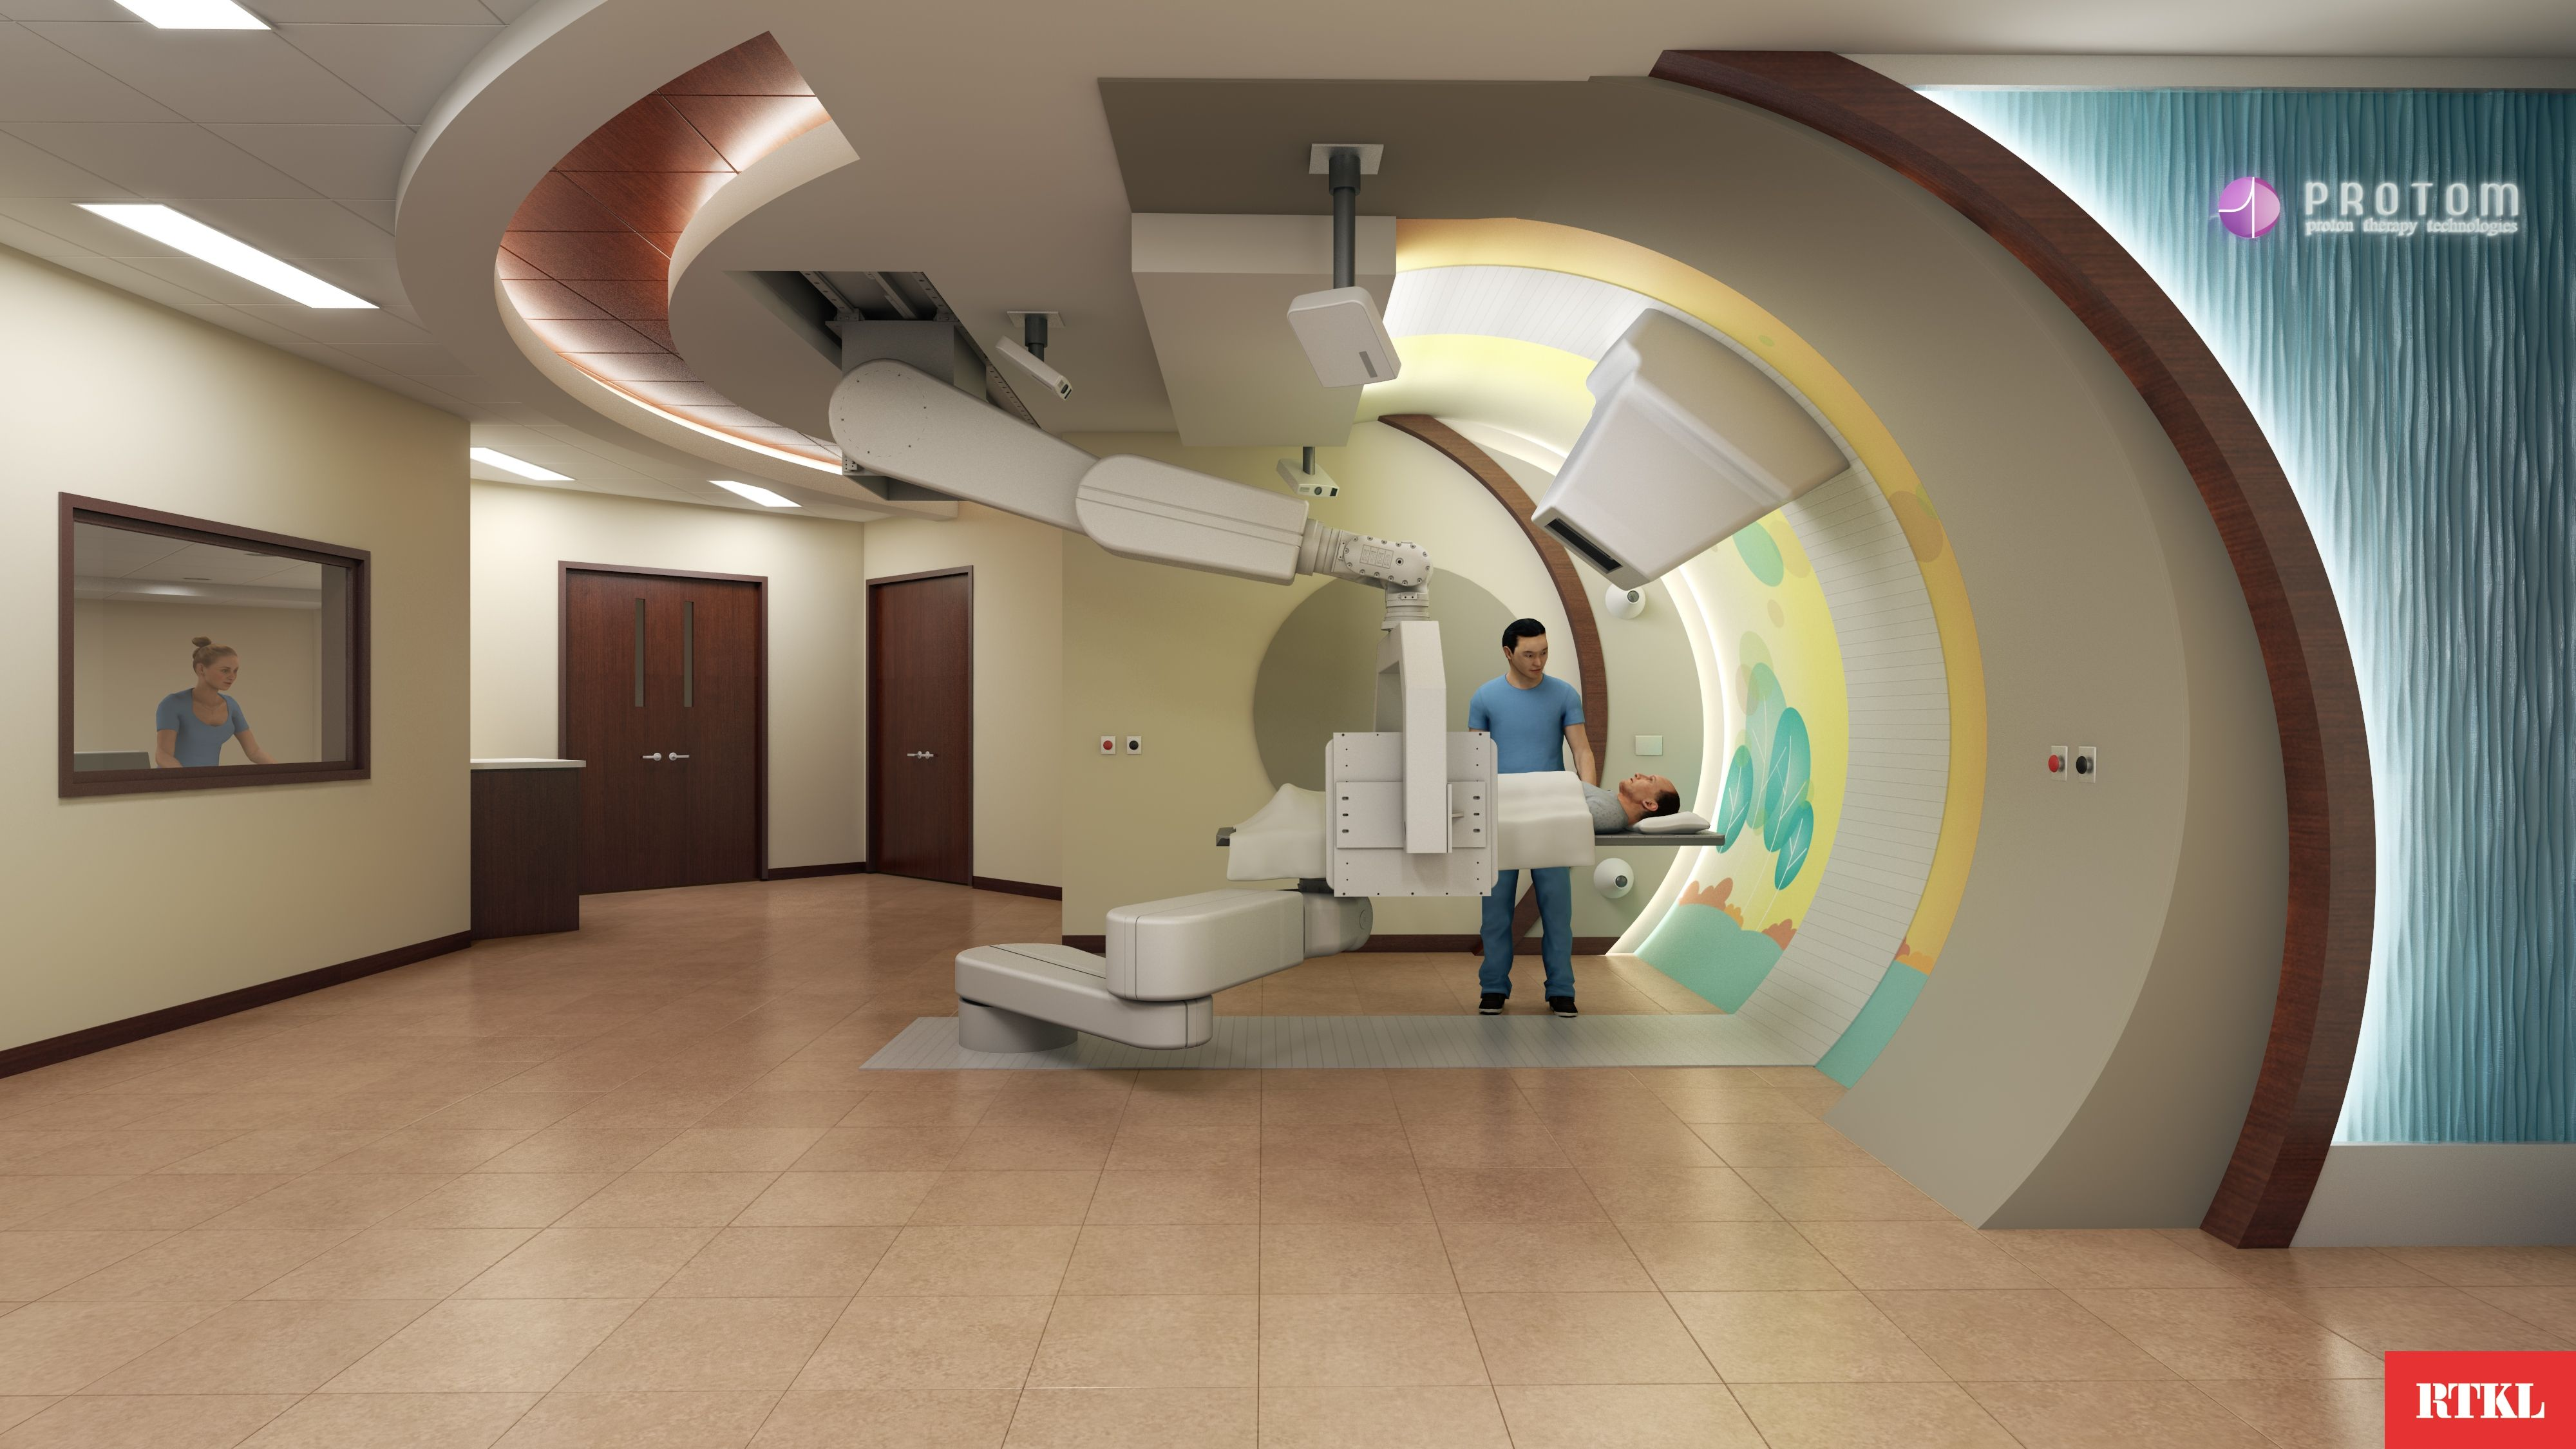 Protom Radiance 330 Proton Therapy Model Information